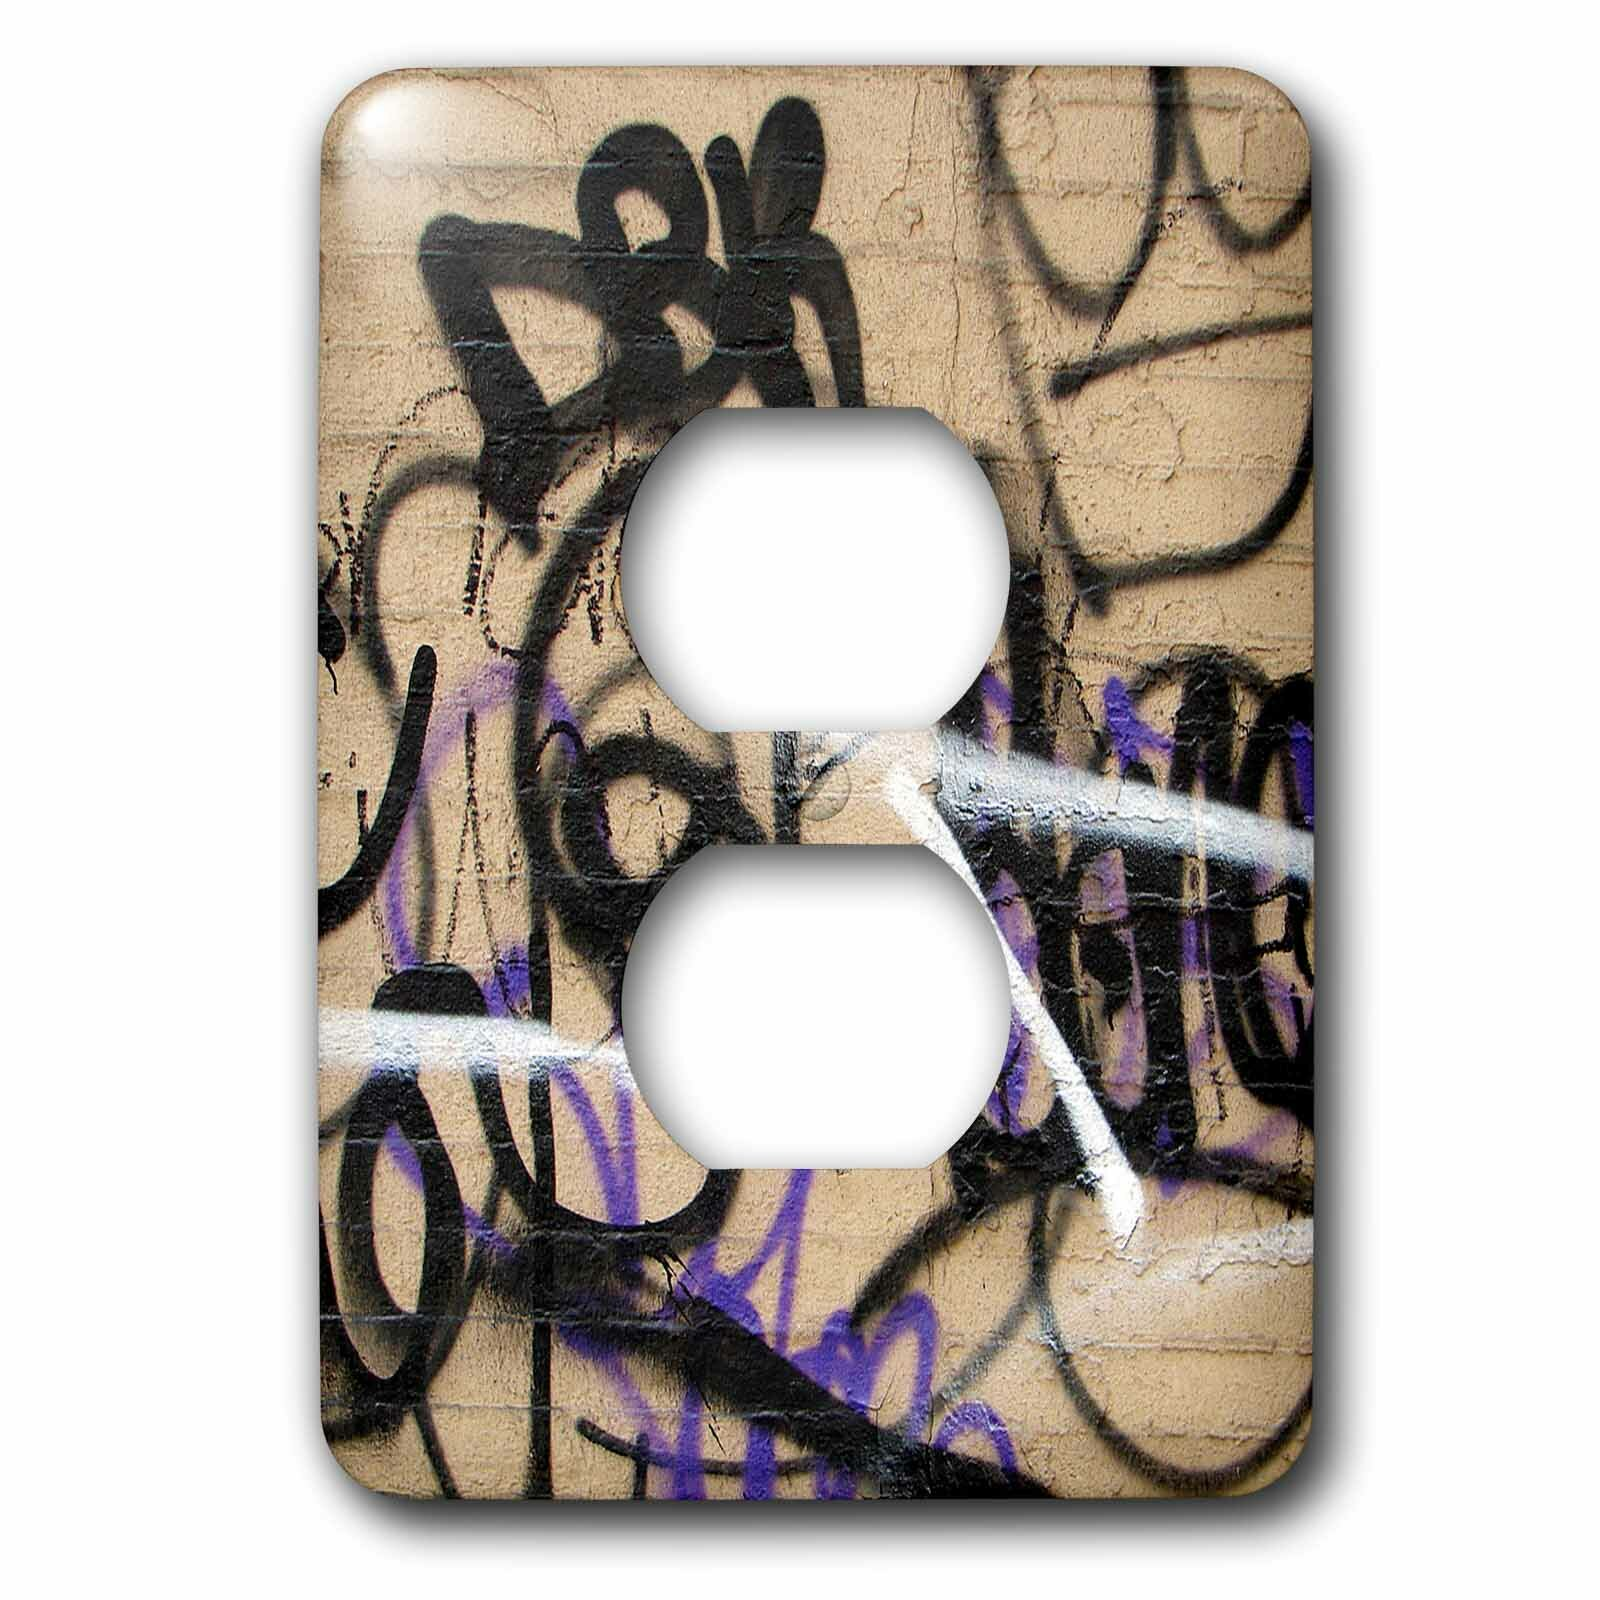 3drose Graffiti 1 Gang Duplex Outlet Wall Plate Wayfair